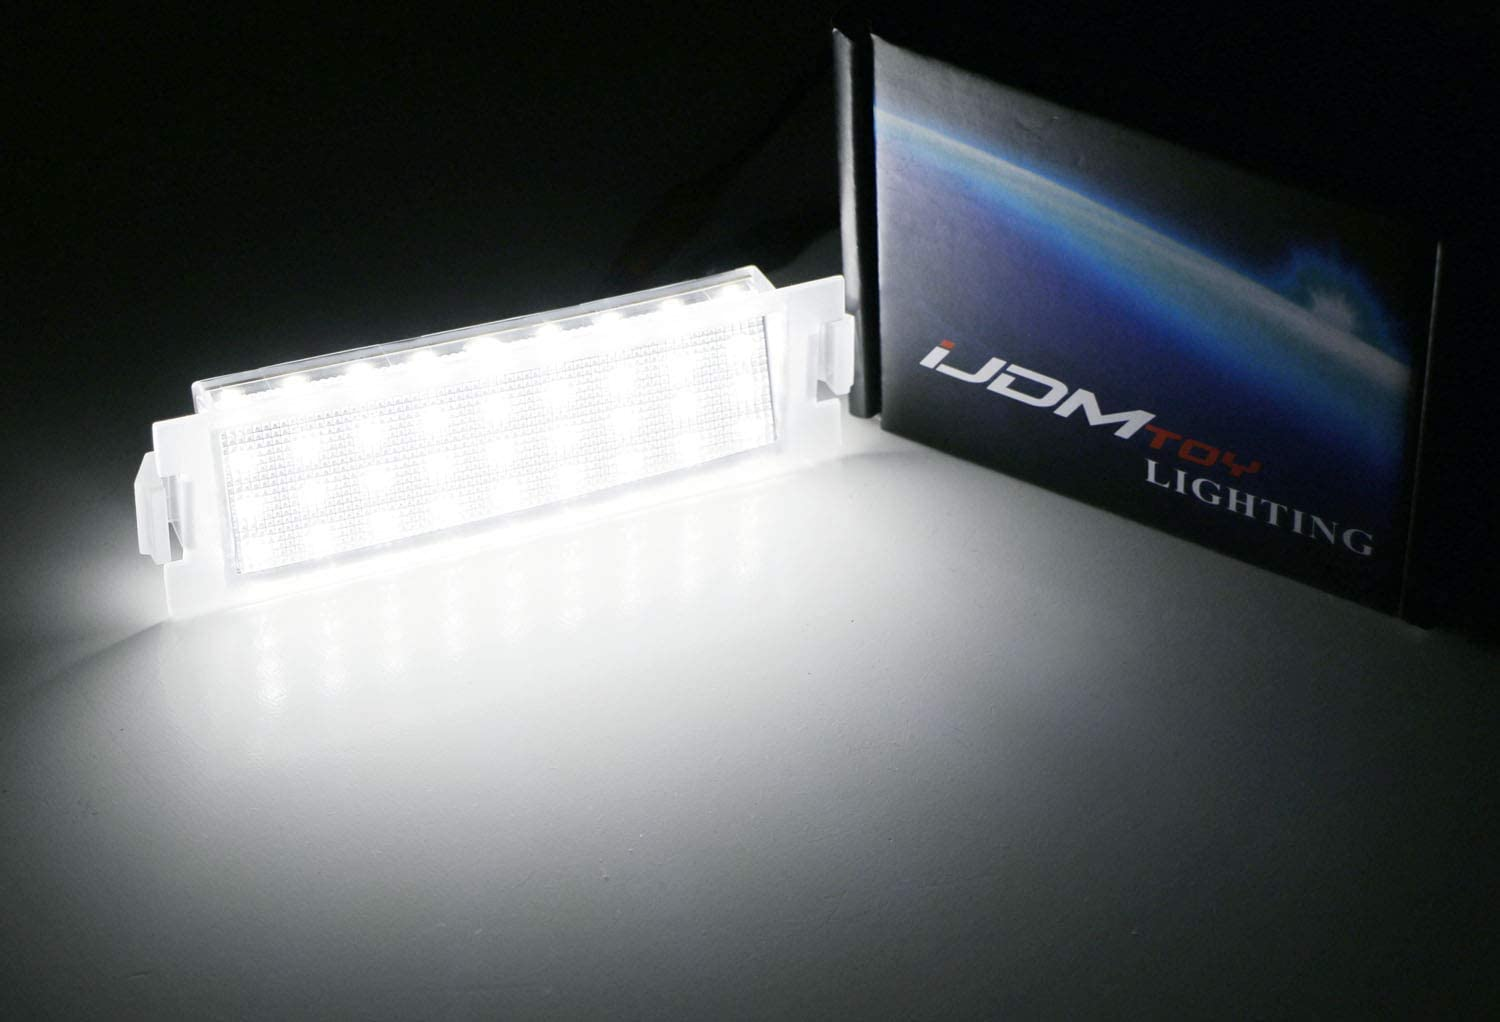 iJDMTOY OEM-Fit 3W Full LED License Plate Light Kit Compatible with Hyundai 2011-17 Veloster Kia 2009-19 Soul 2009-16 Genesis Coupe Powered by 18-SMD Xenon White LED Diodes